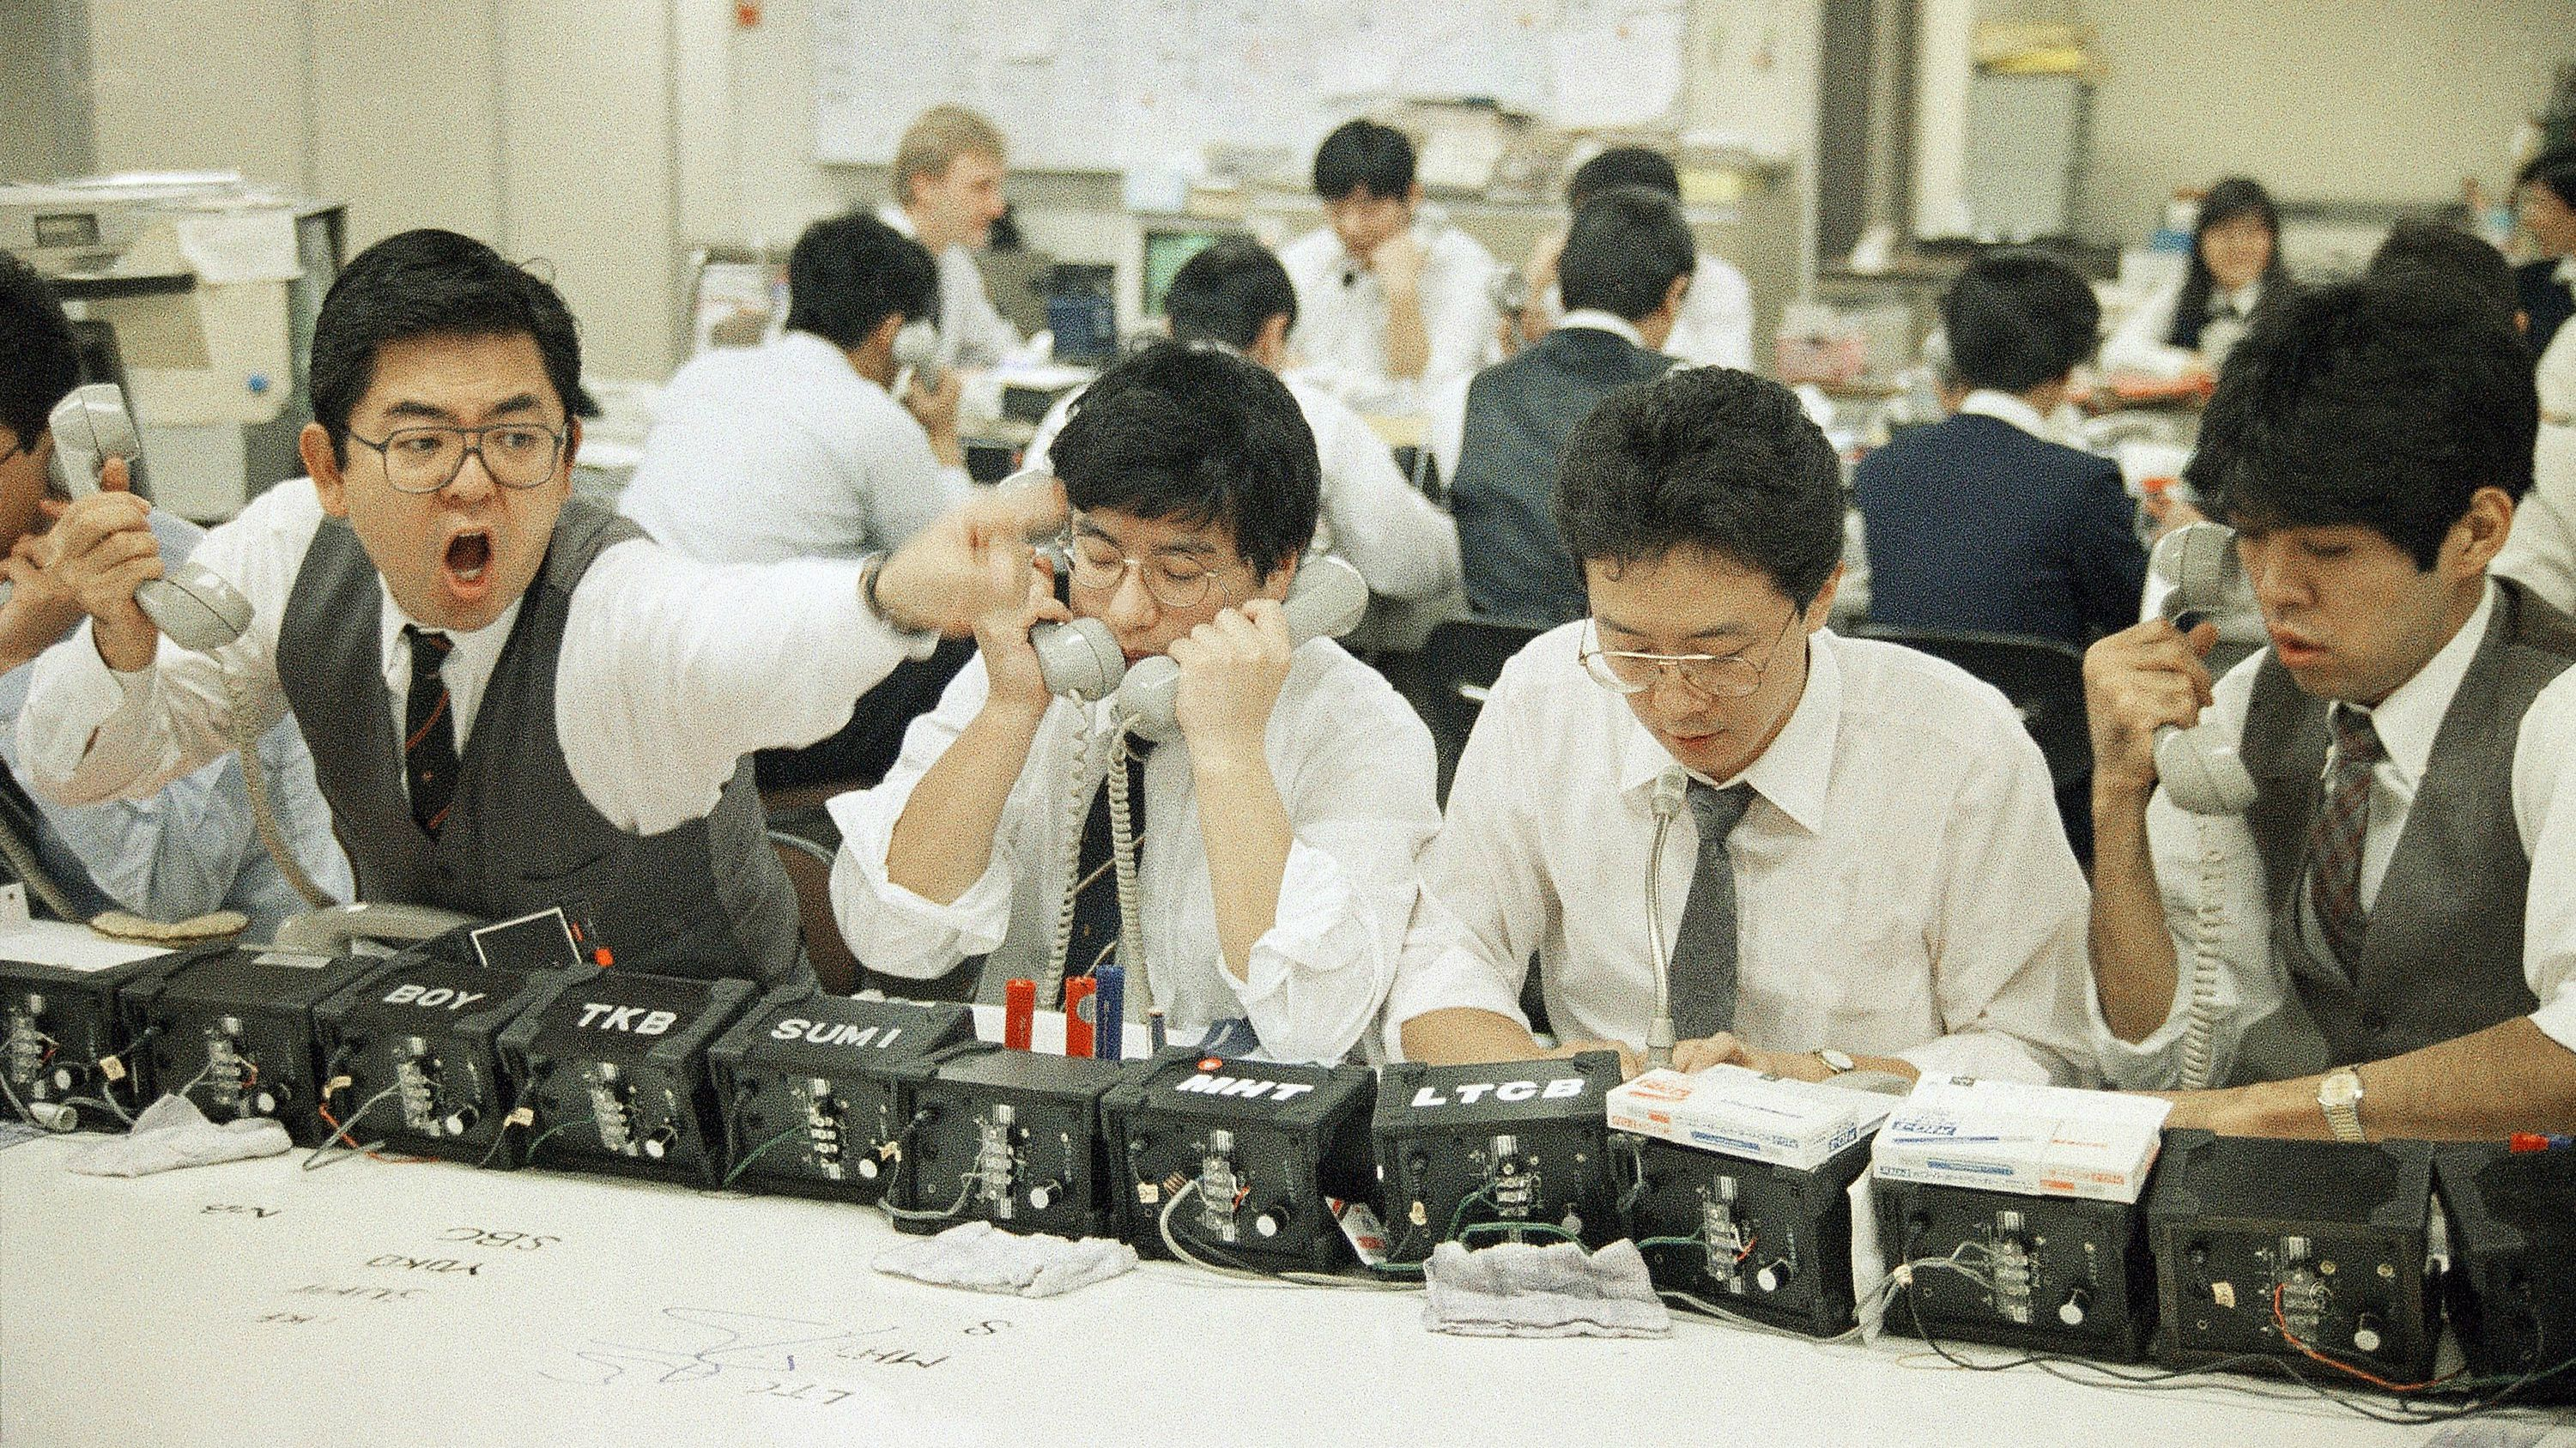 A Tokyo money dealer shouts and gestures during heavy trading at the Tokyo Foreign Exchange market in Tokyo, Nov. 1987. The U.S. dollar traded low as worldwide major stock market experienced crashes this year. (AP Photo/Sadayuki Mikami)